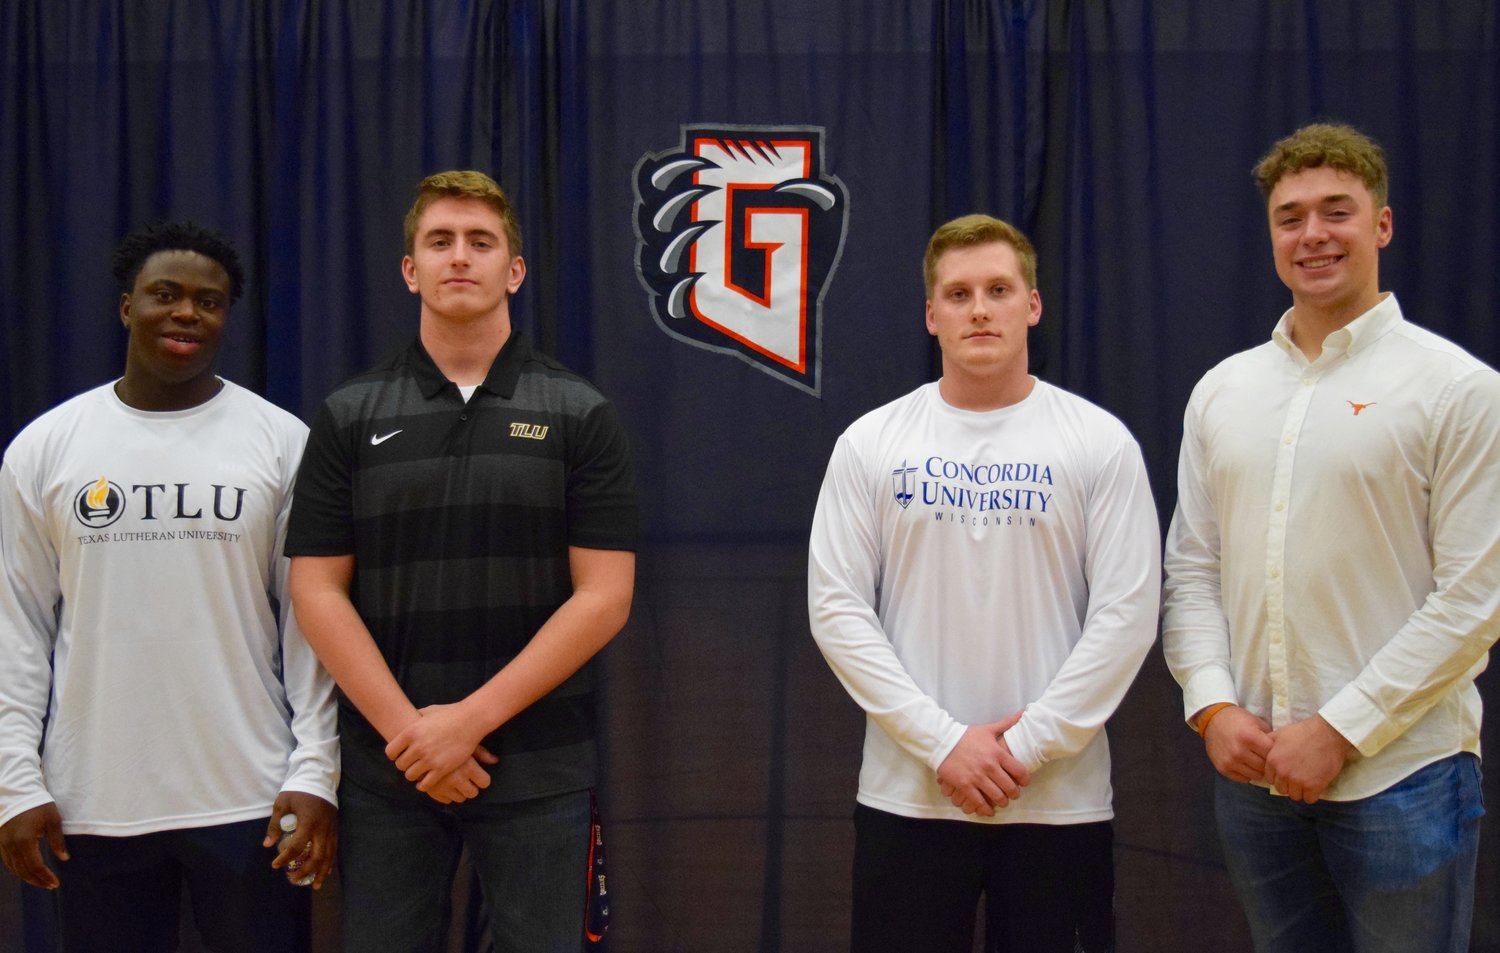 Four Glenn football players signed to continue their careers in college last week. From left: Jeff Diaku (Texas Lutheran), Jacob Trim (Texas Lutheran), Matthew Hester (Concordia Wisconsin), Nate Hatter (Texas)